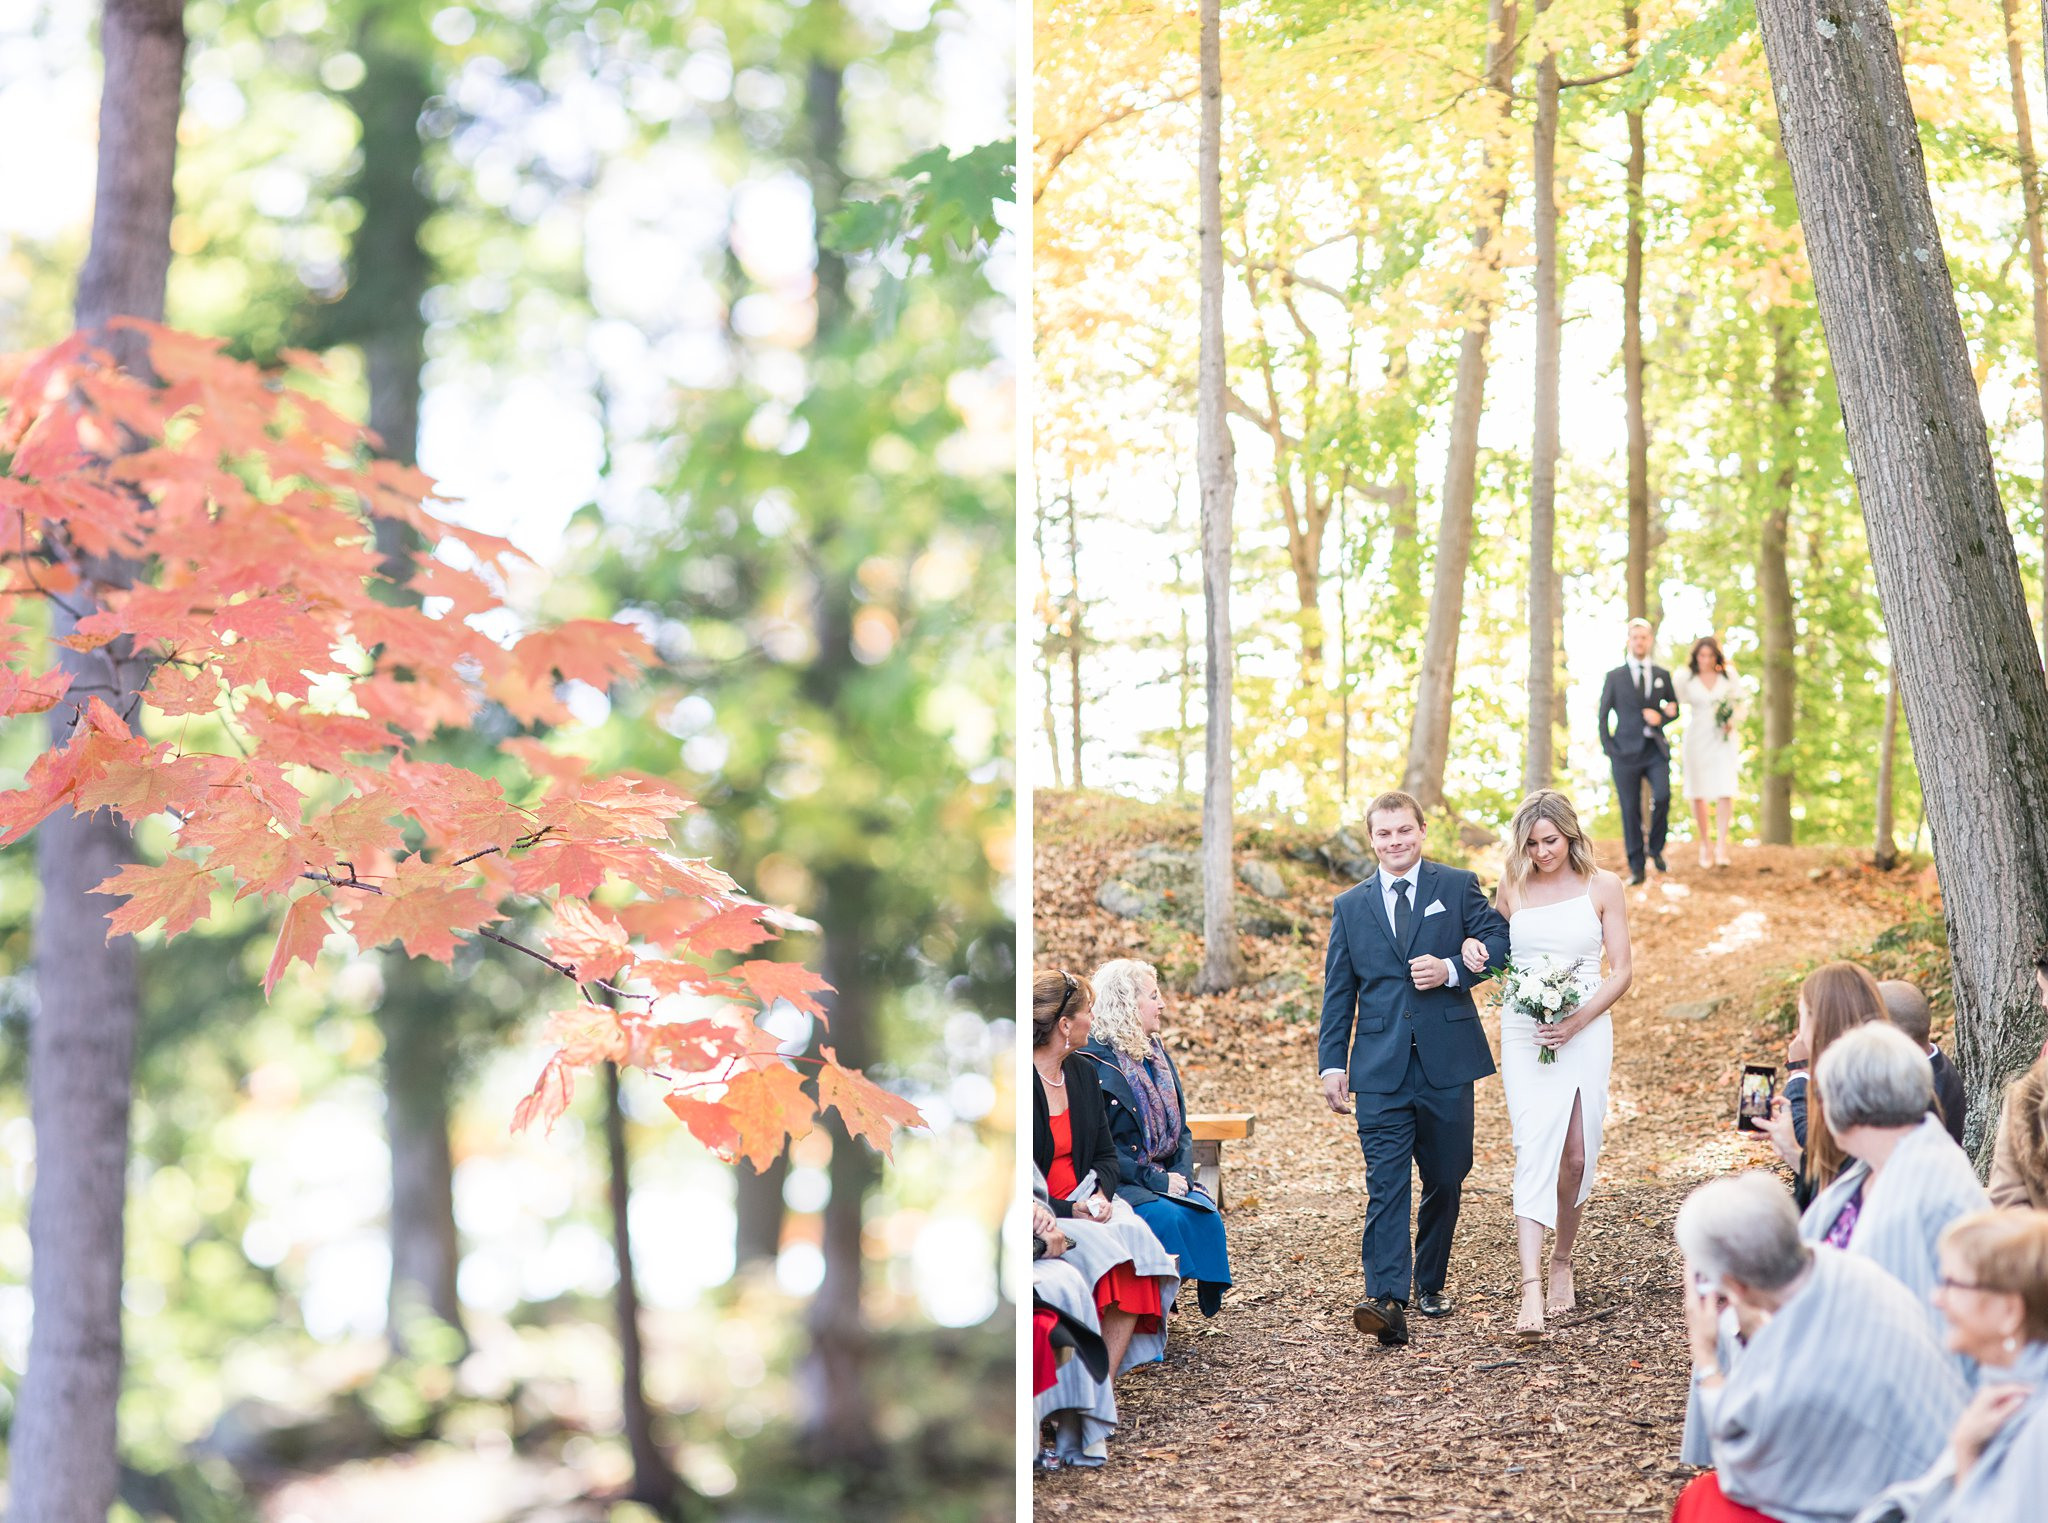 Ceremony in the forest, Opinicon Wedding Photos by Amy Pinder Photography